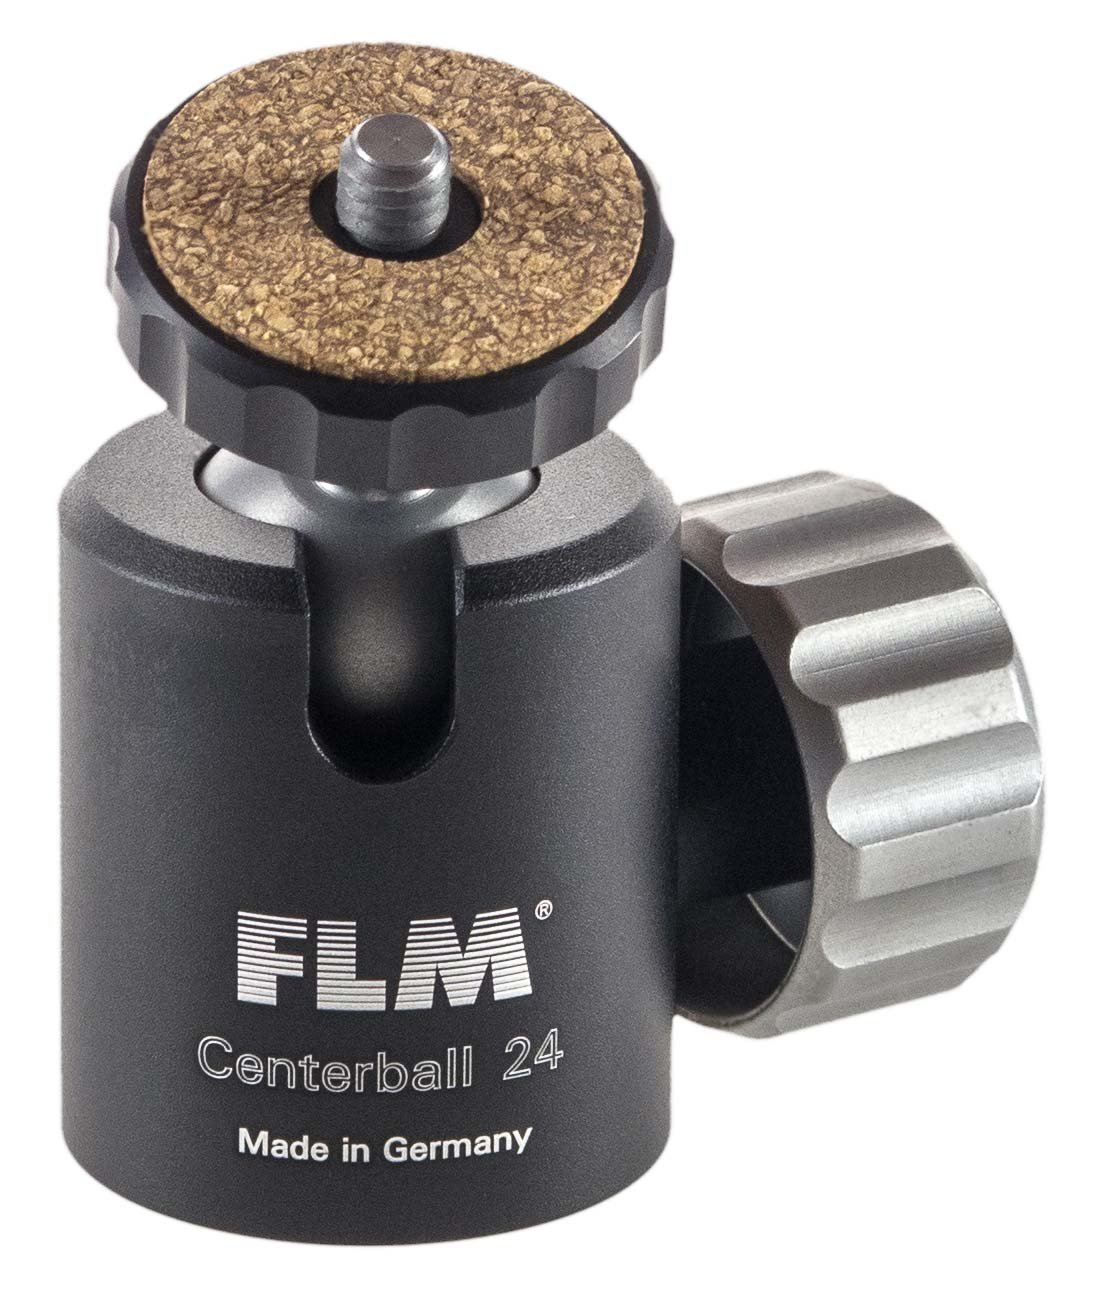 FLM CB-24E 24mm Centerball Head without Friction, 22.04 lbs Load Capacity by FLM